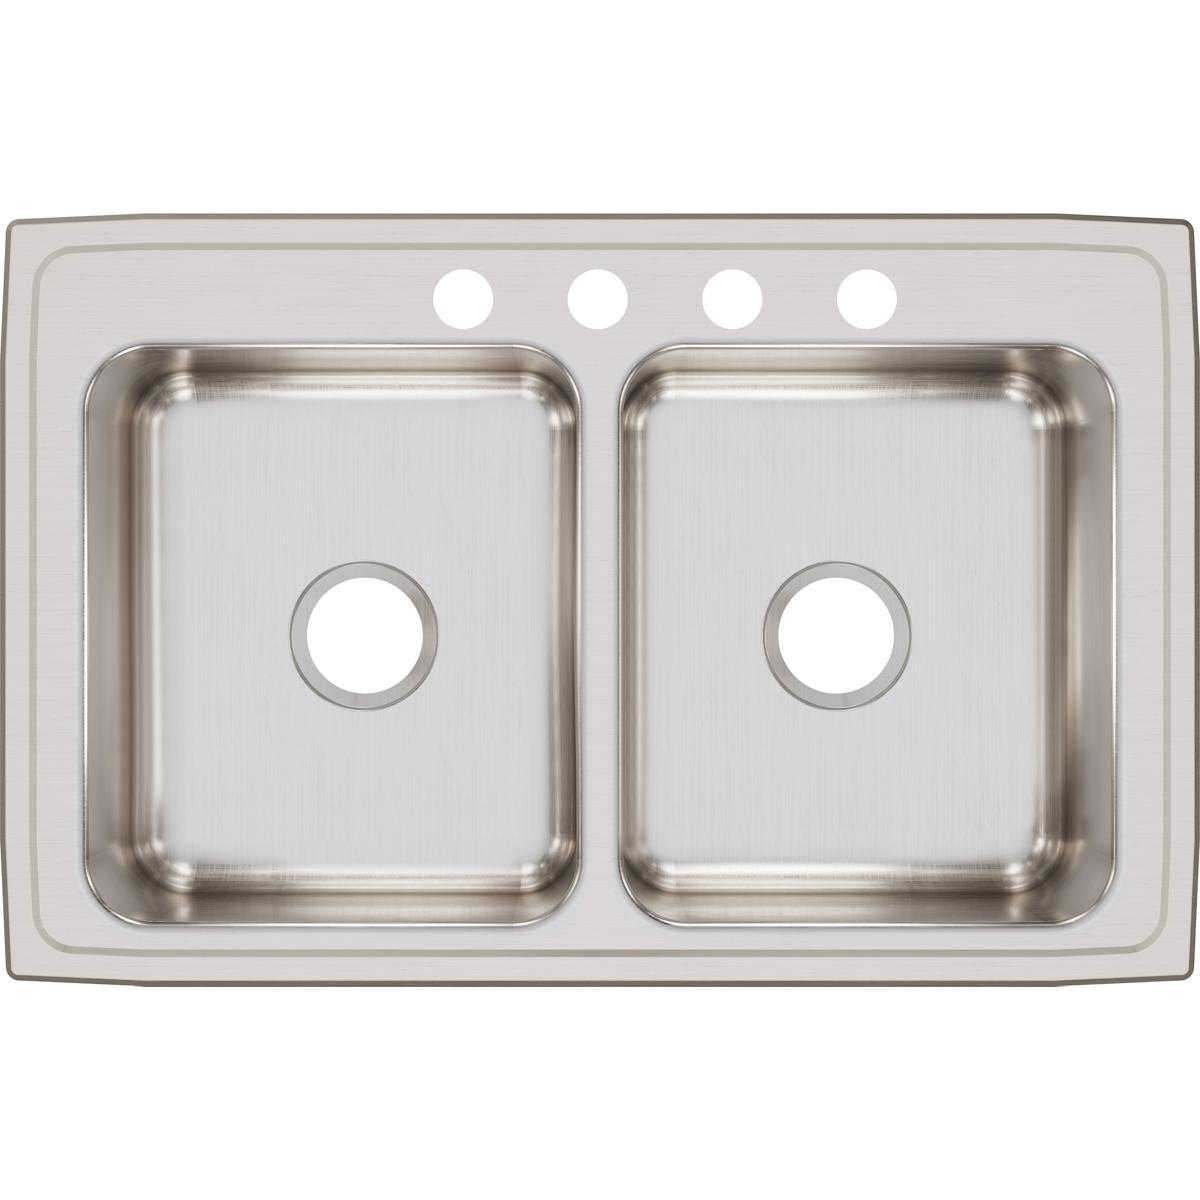 "Elkay Lustertone Classic Stainless Steel 33"" x 21-1/4"" x 7-7/8"", Equal Double Bowl Drop-in Sink-DirectSinks"